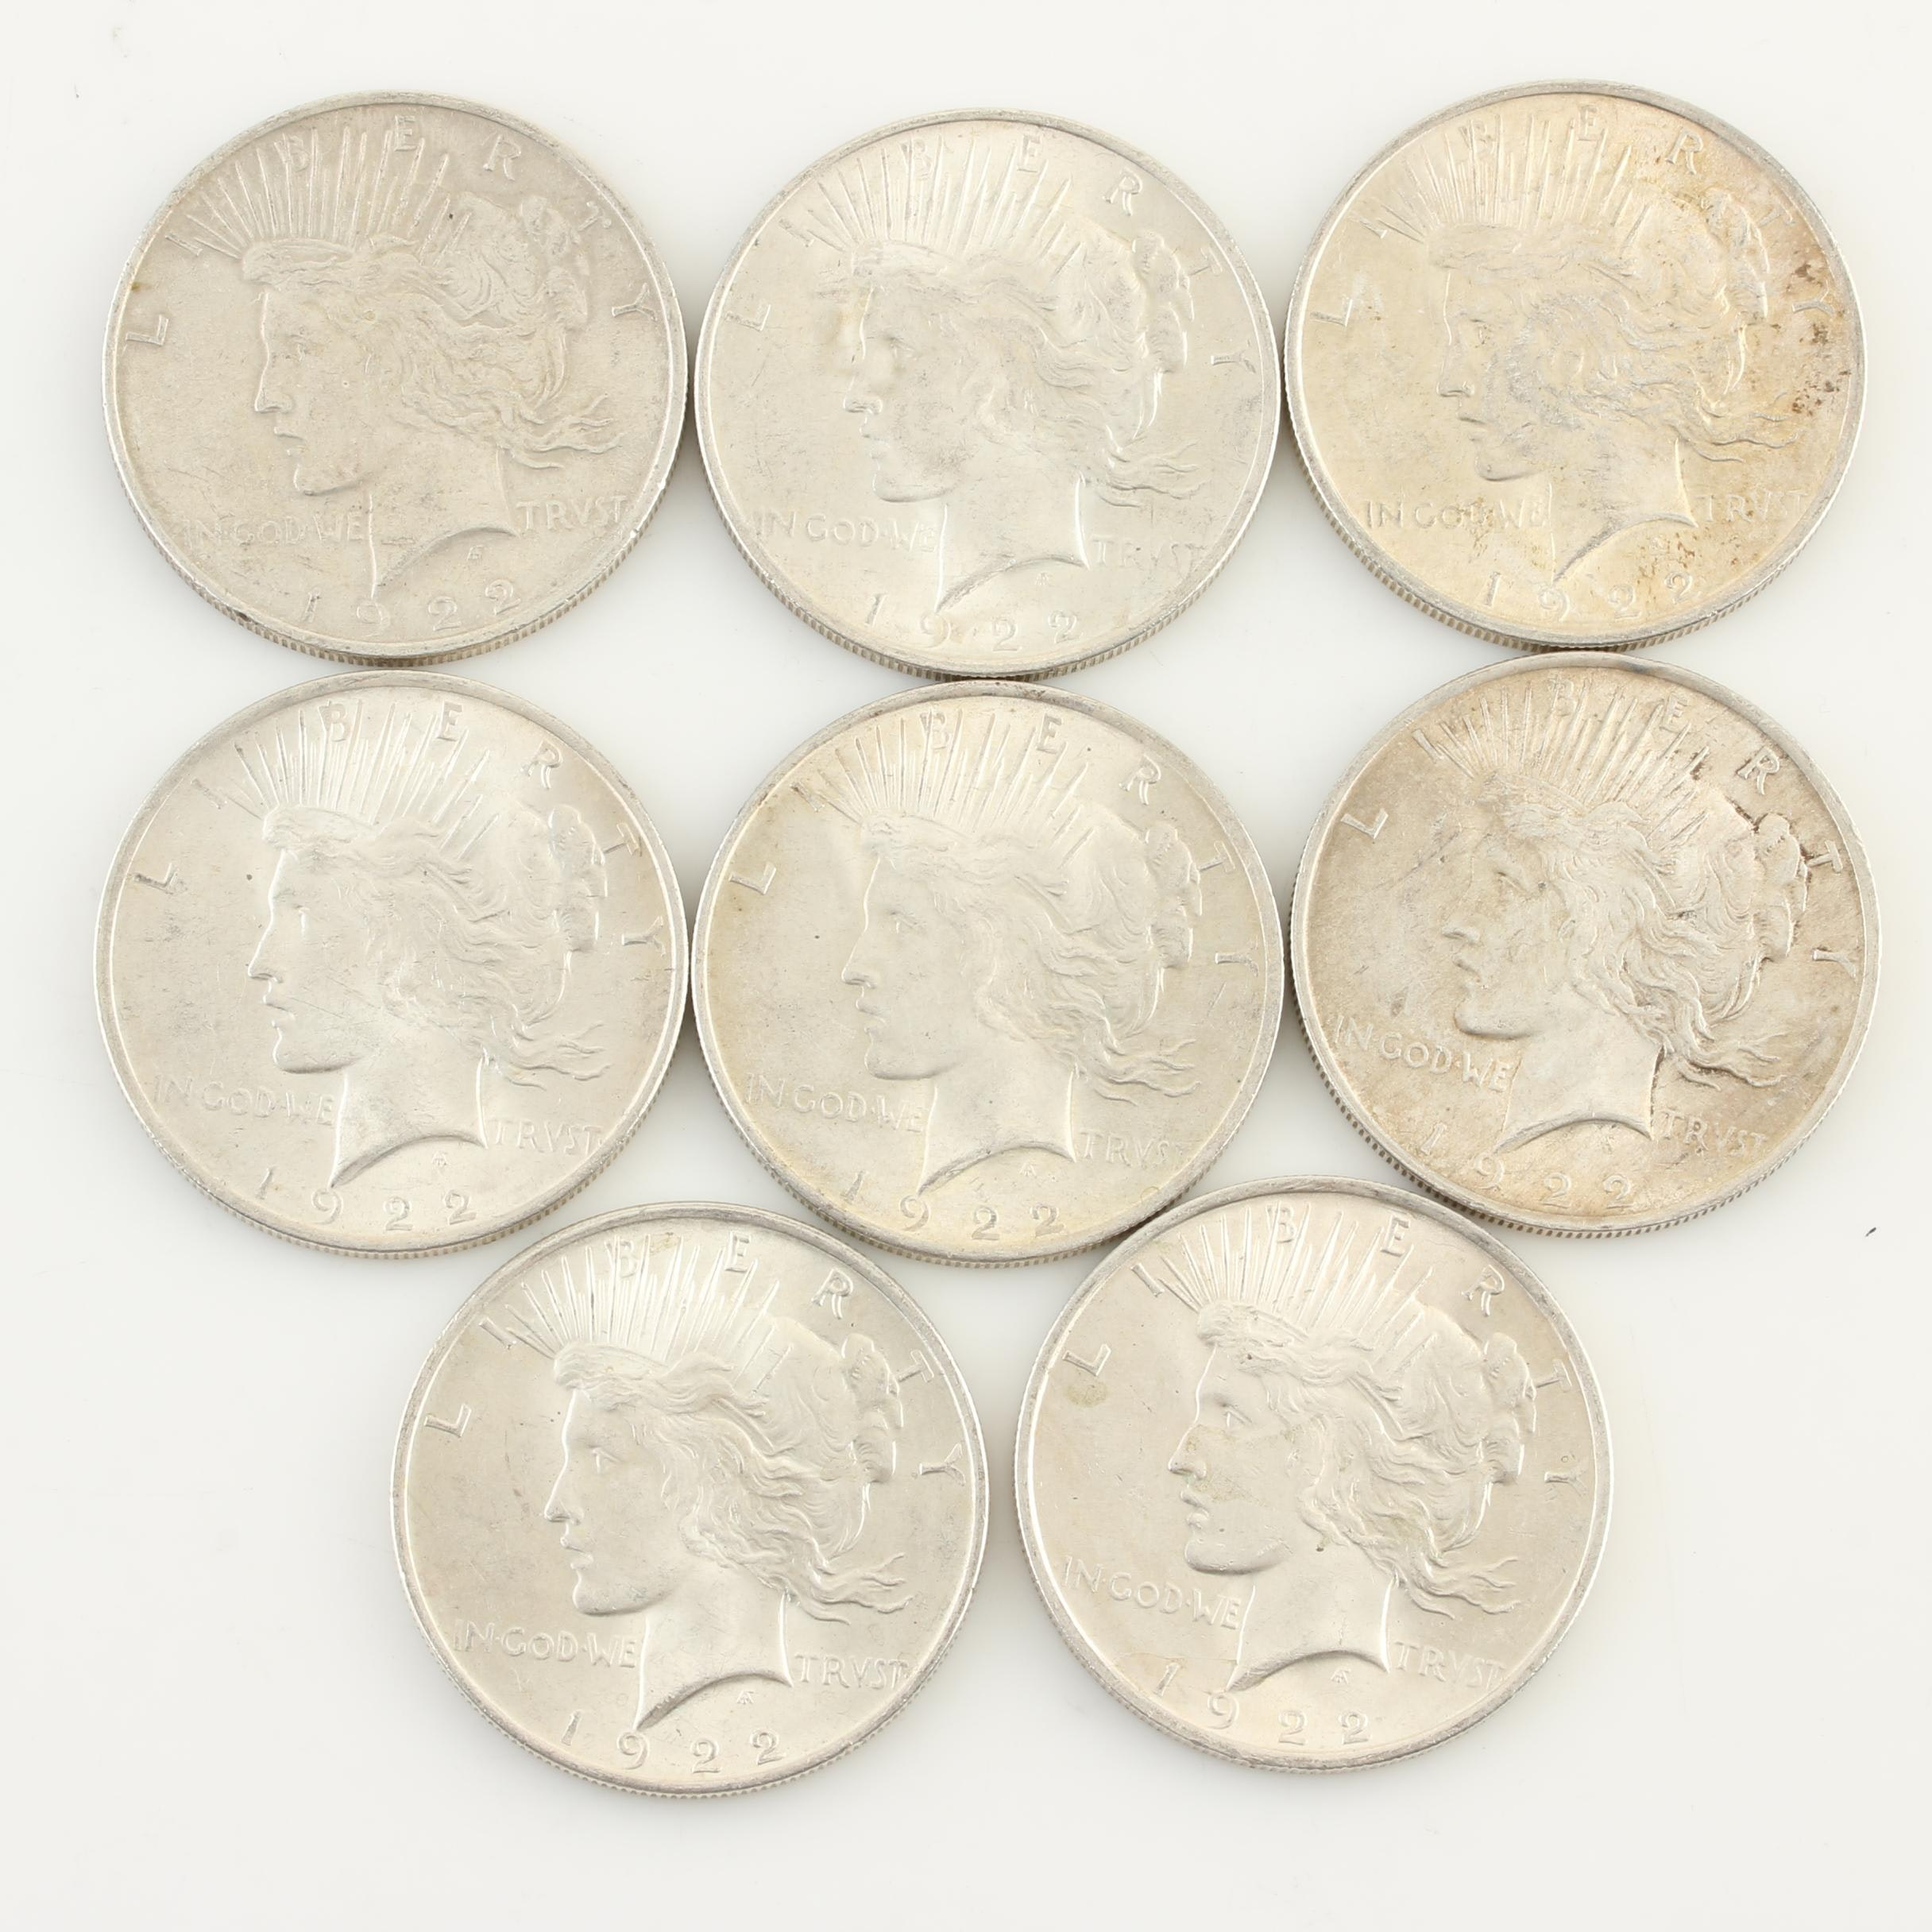 Group of Eight 1922 Silver Peace Dollars